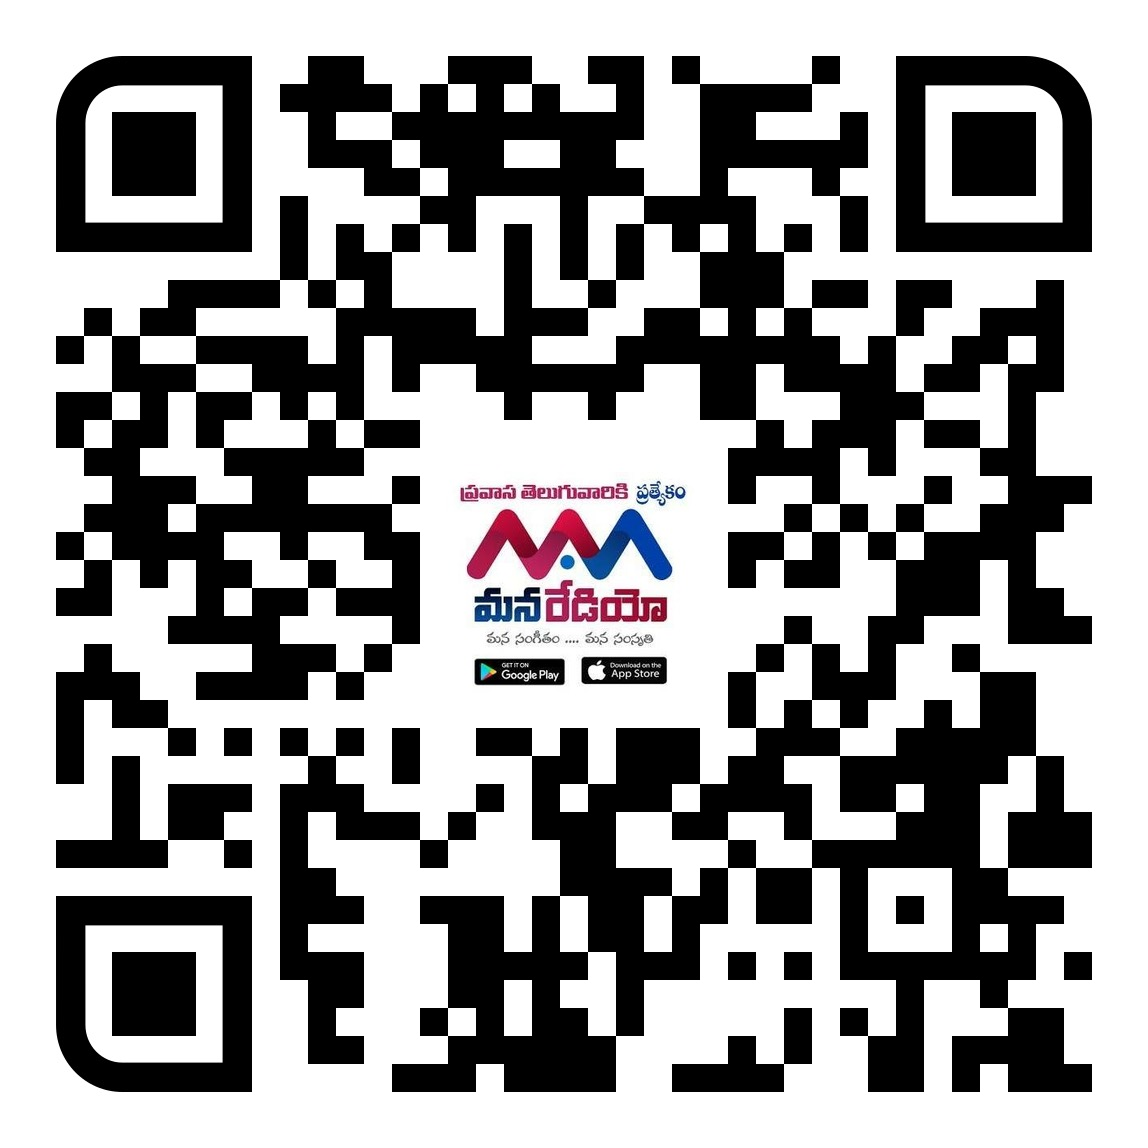 Scan this QR Code & click send you will get the ticket to play housie with us & get a chance to win exciting gifts only on Mana Radio, today @ 8:30PM (IST) 10:00 AM (CST) 11:00 AM (EST) Get the free Ticket: https://wa.me/19726668064?text=Bingo…  #Housie #bingo #Tambola #manaradio #teluguradio pic.twitter.com/omxQIkEVBi